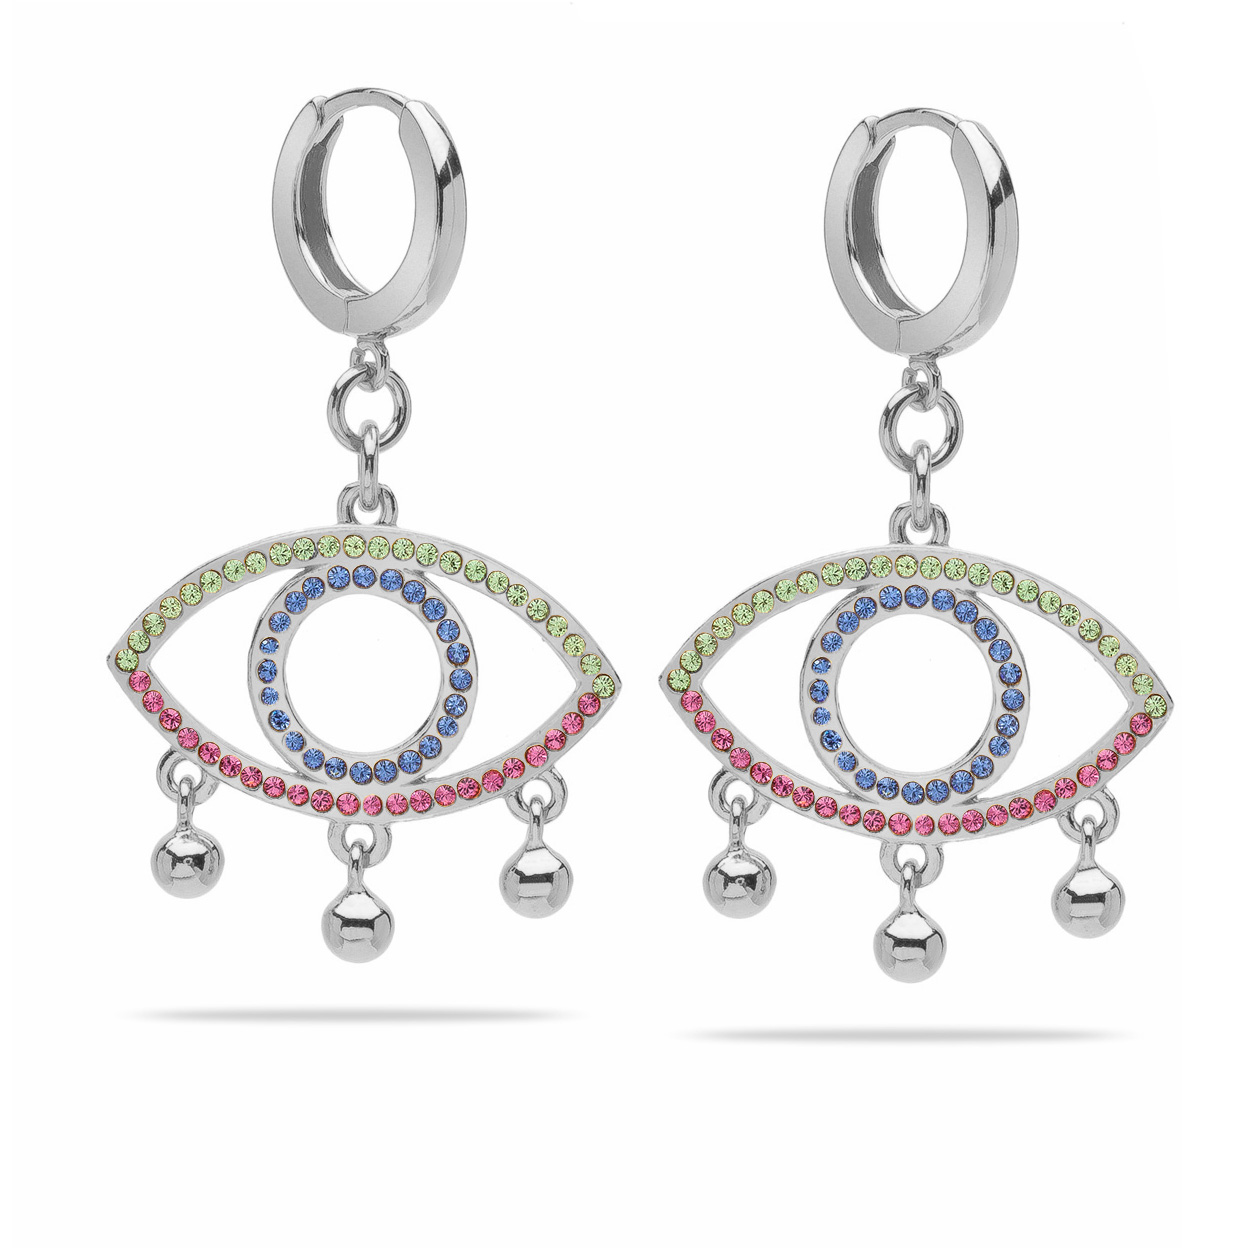 SILVER FACE EARRINGS WITH SWAROVSKI CRYSTALS